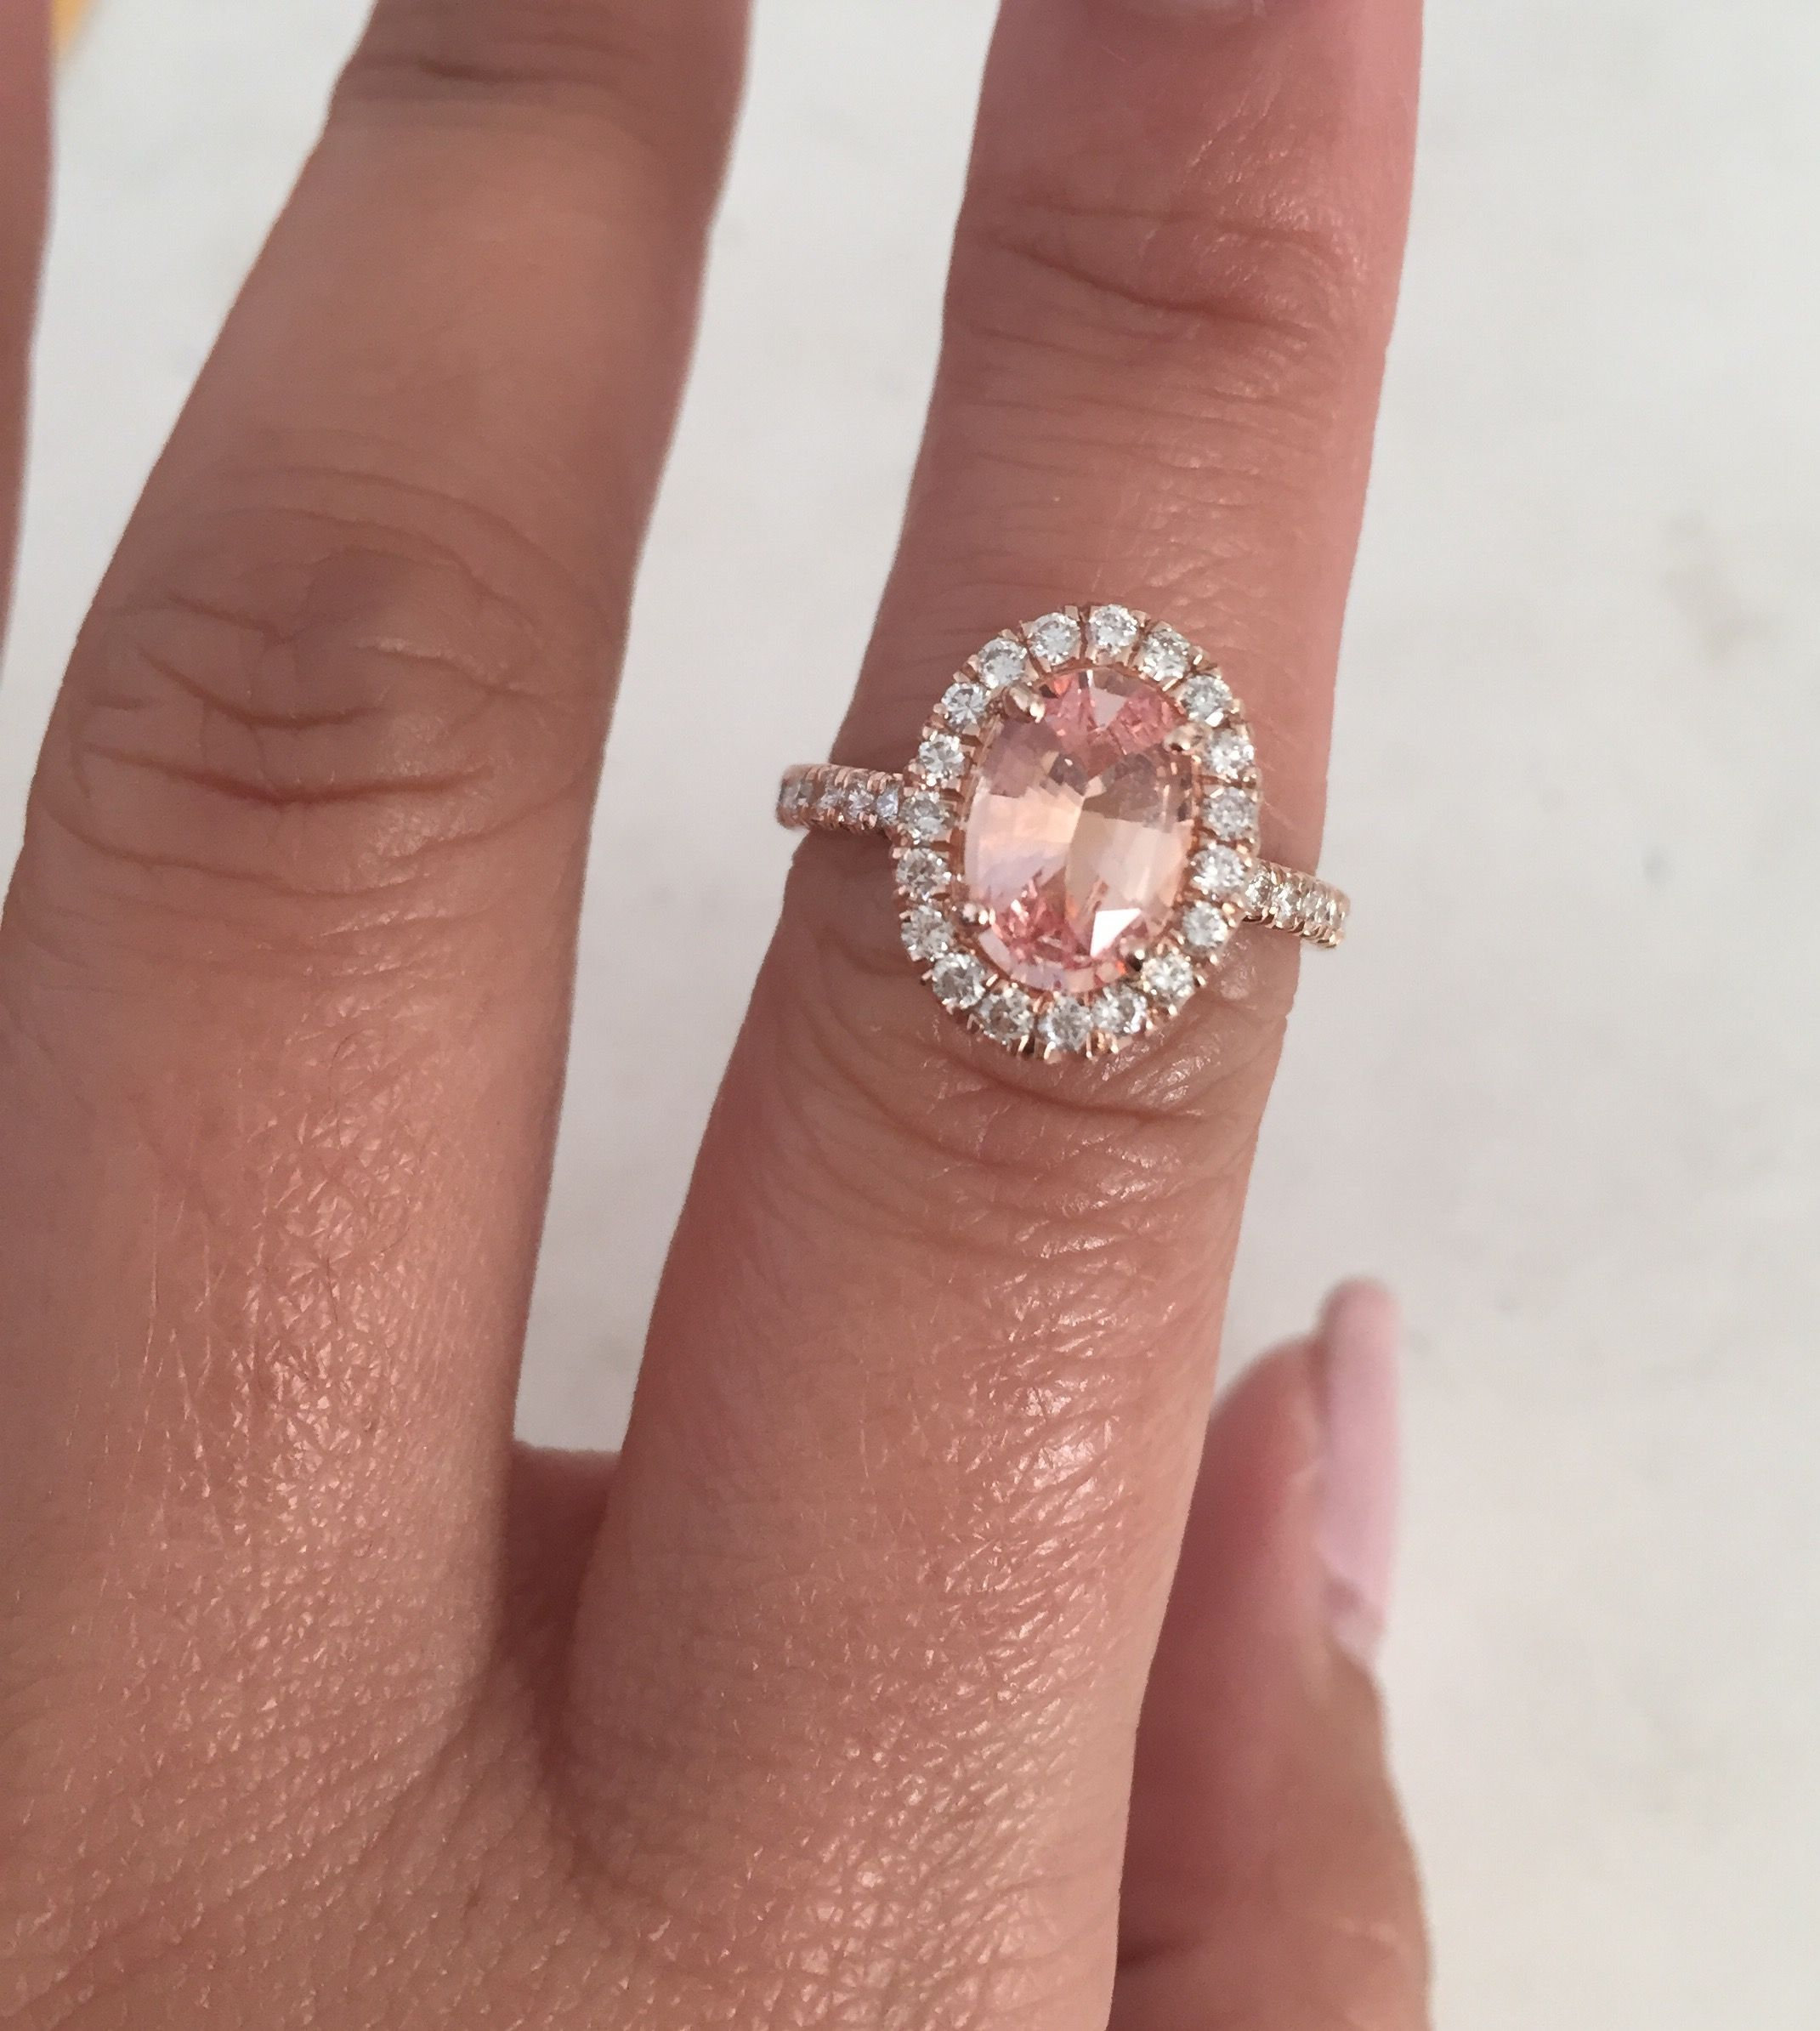 sarah custom oval full cojs pink order wedding ring paid laurie set peach rose gold and halo in for product designs engagement diamond sapphire